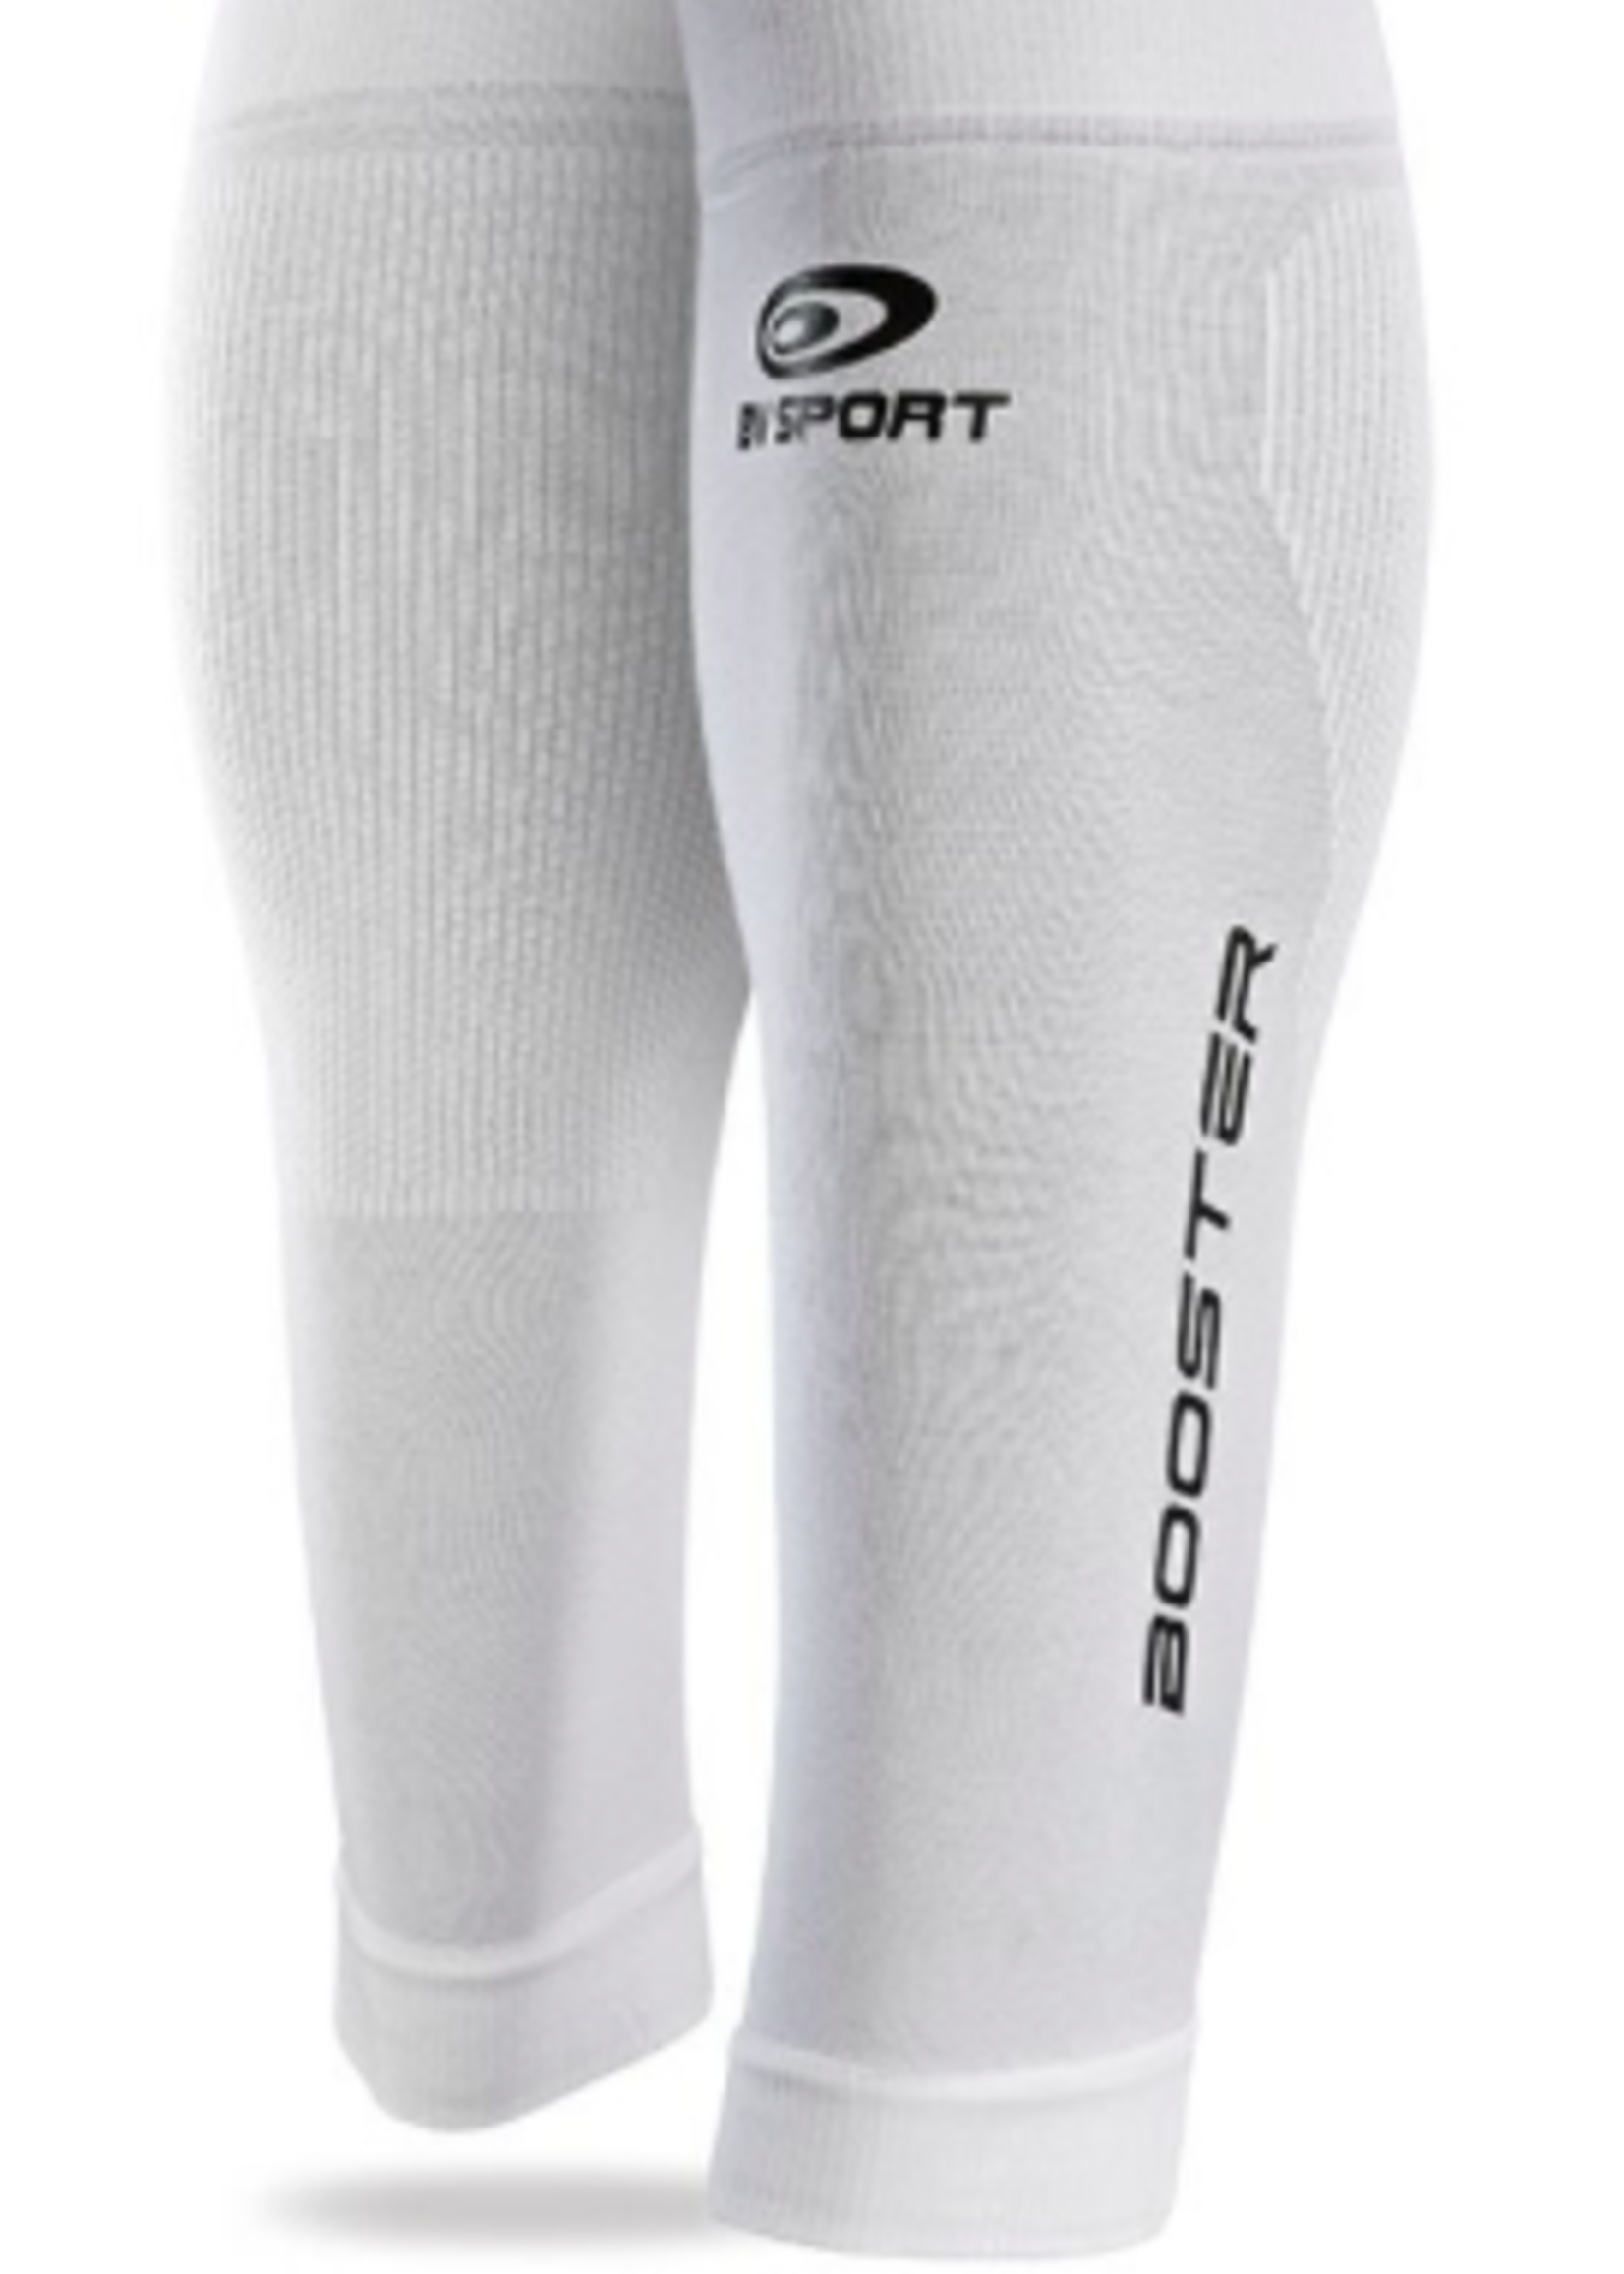 BV Sport BV Sport Booster One Compression Calf Sleeves